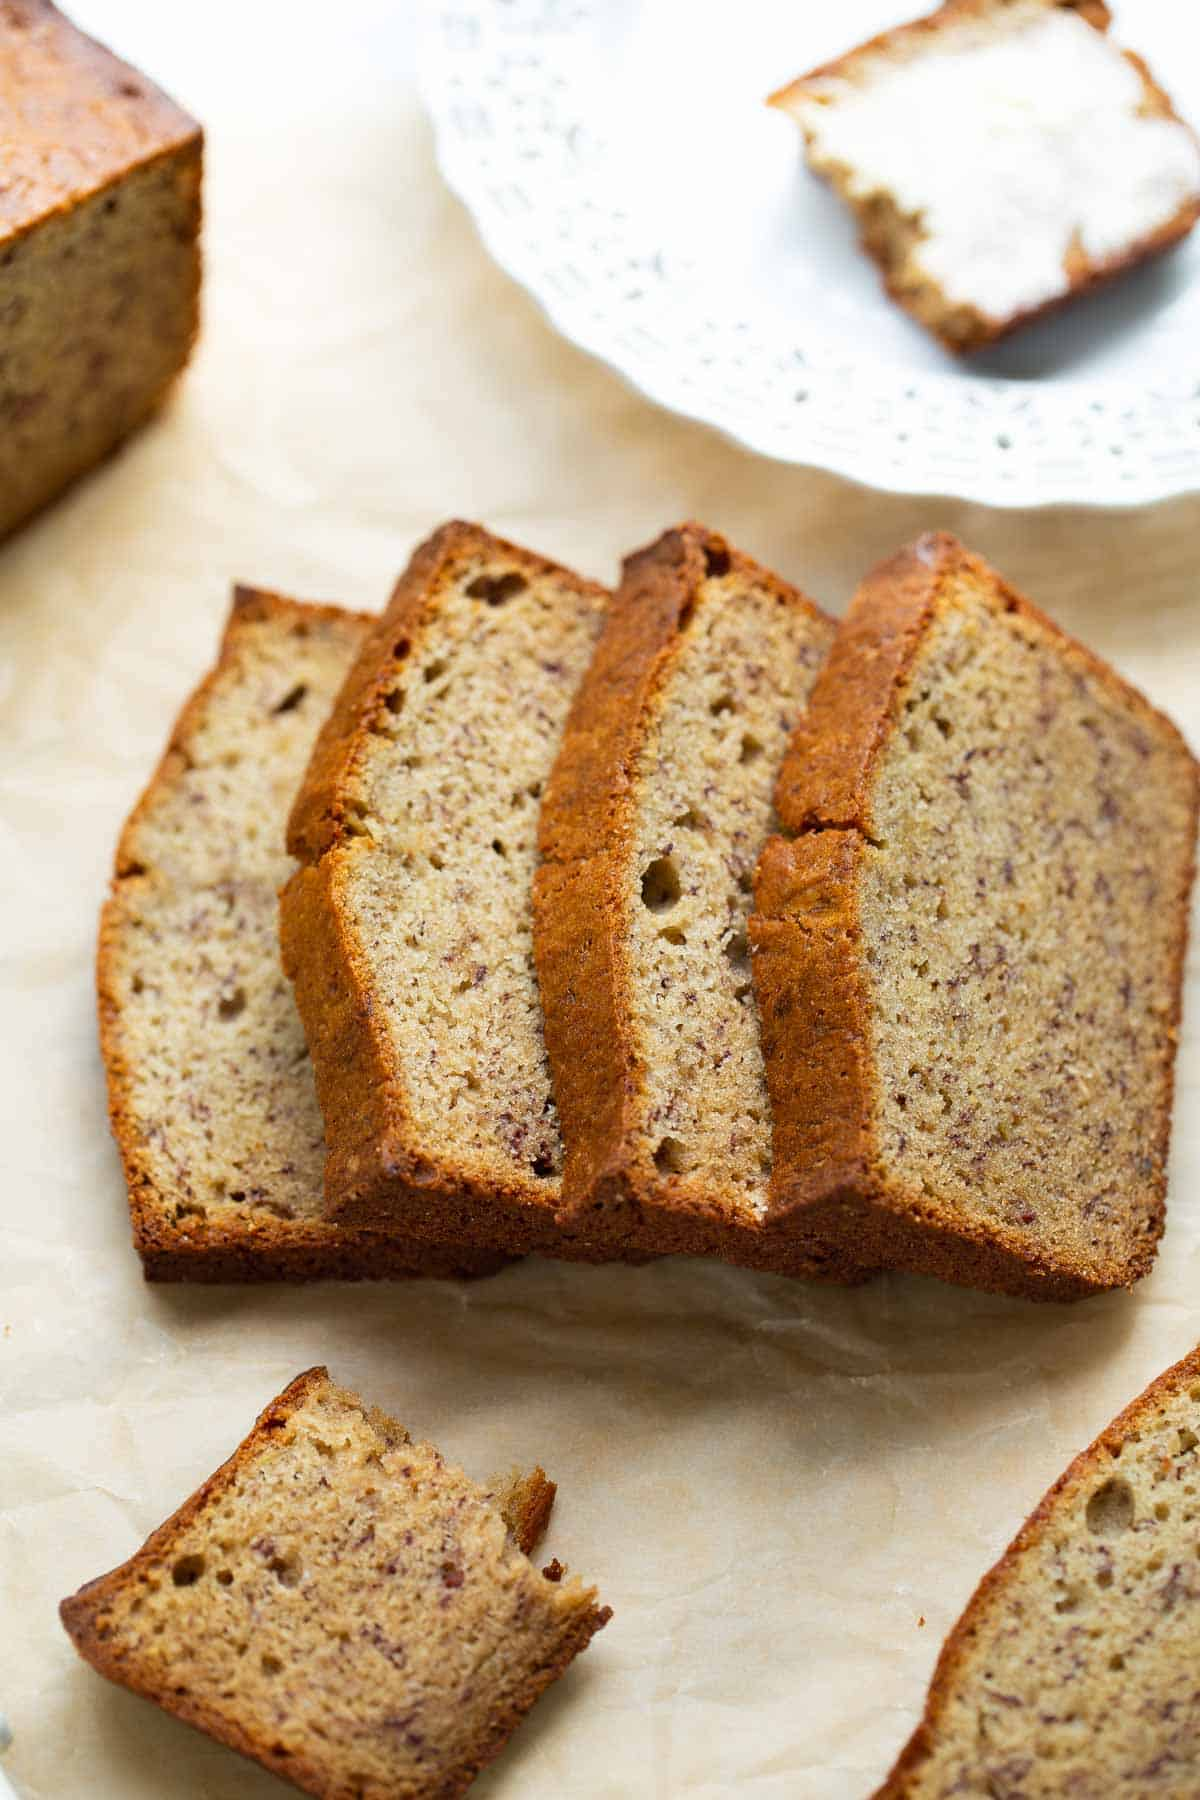 slices of banana bread on parchment paper with plate with buttered banana bread in background